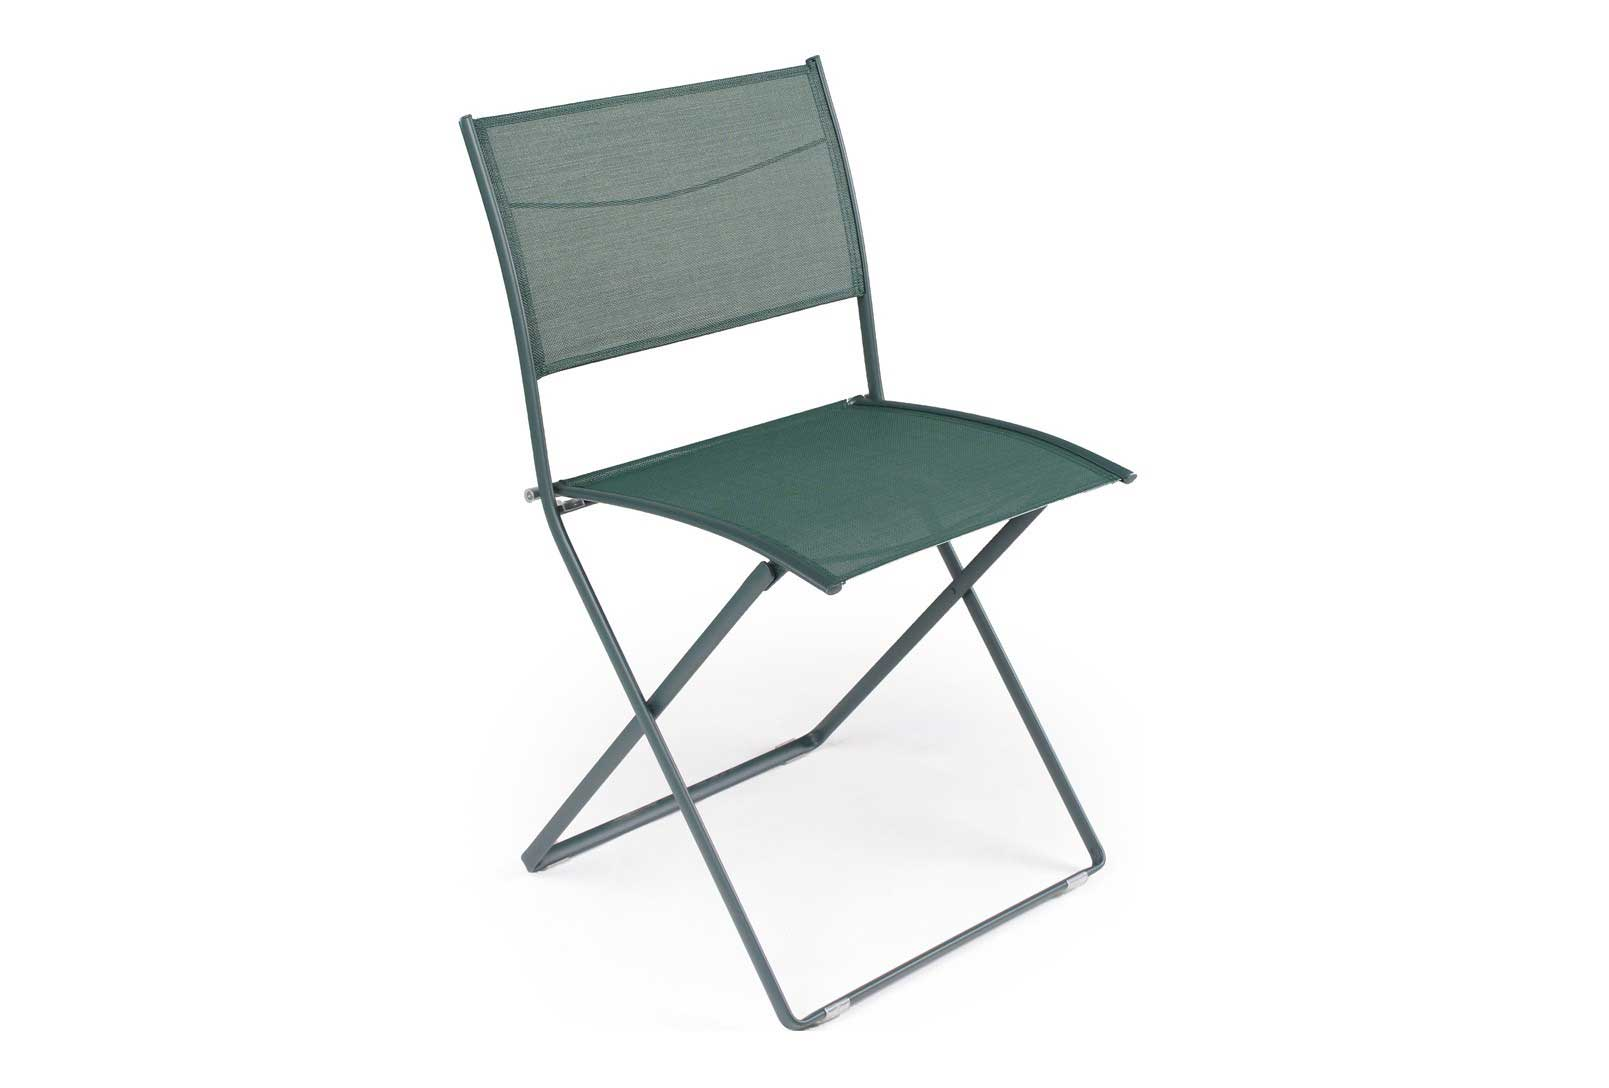 Patio Folding Chairs Chairs For Every Purpose Ross Stores Recalls Folding